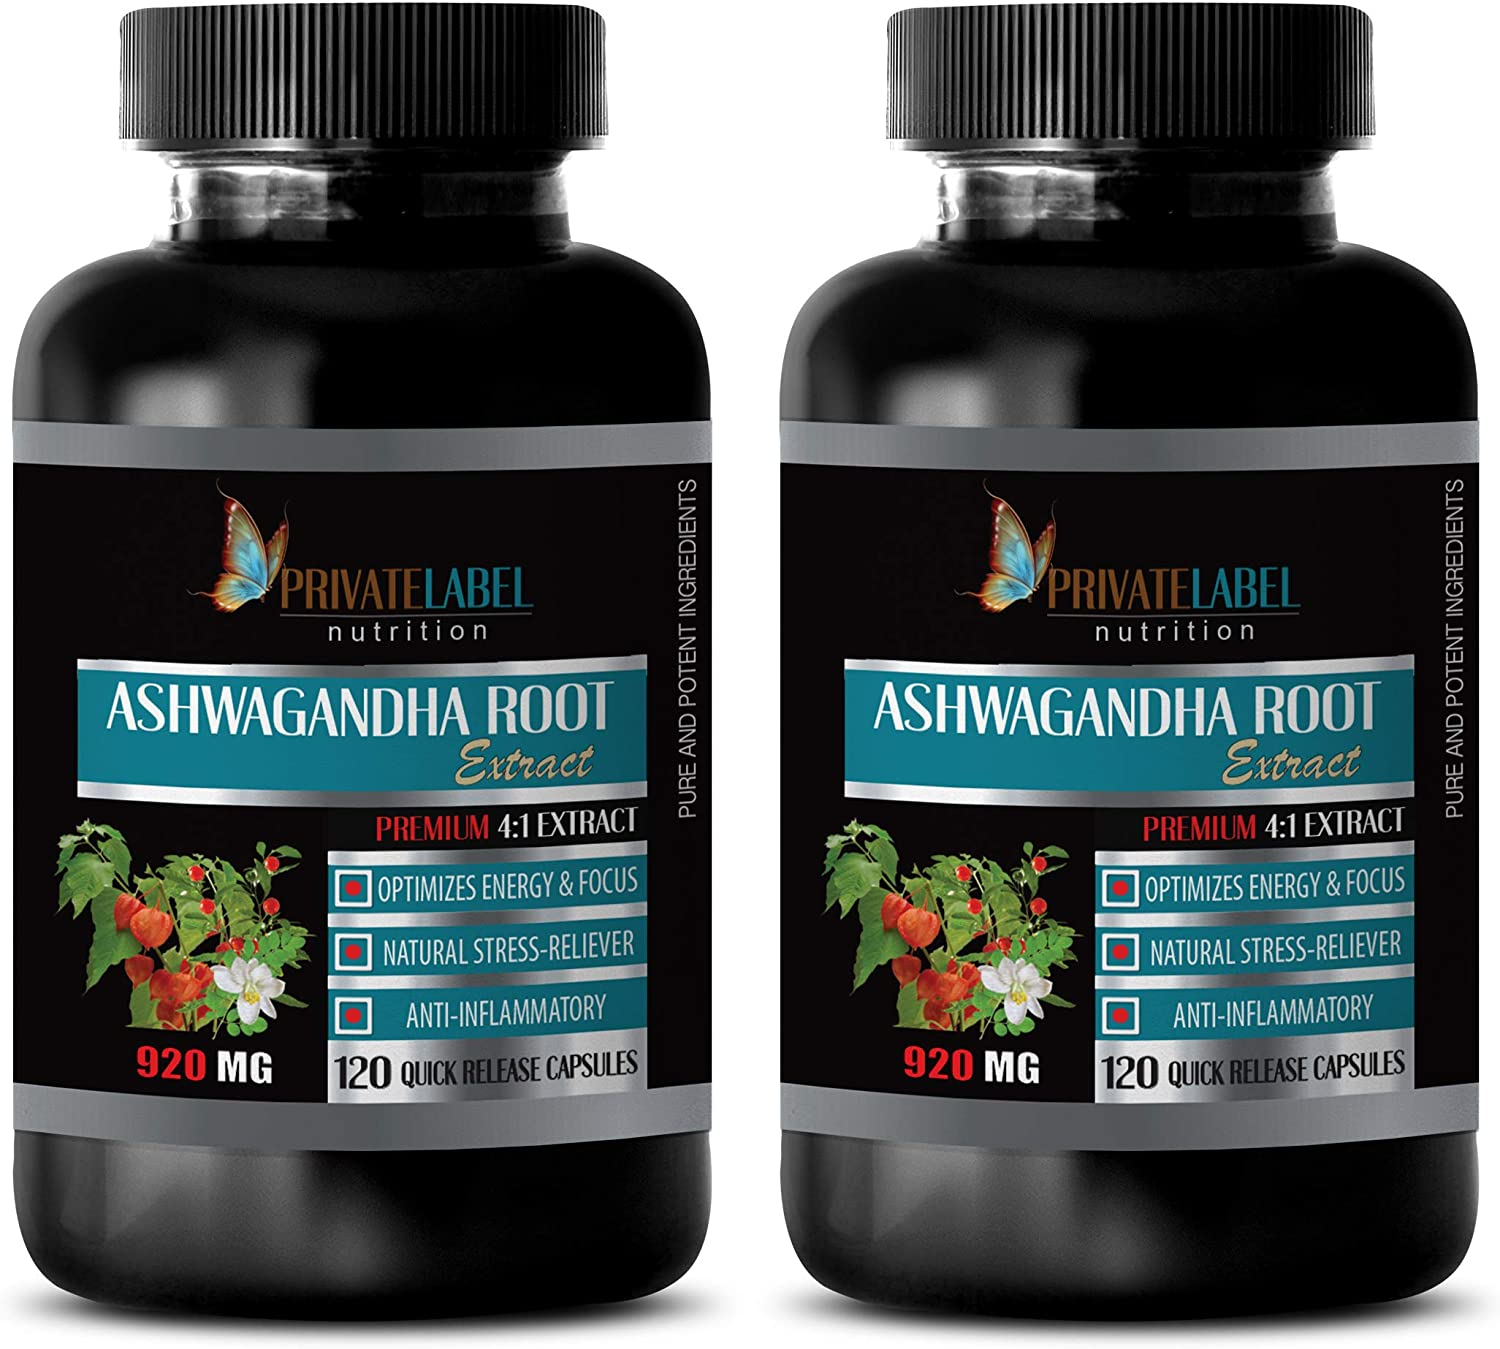 Immune Support Detox - Max 73% OFF ASHWAGANDHA 4:1 Extract as Premium Max 66% OFF Root